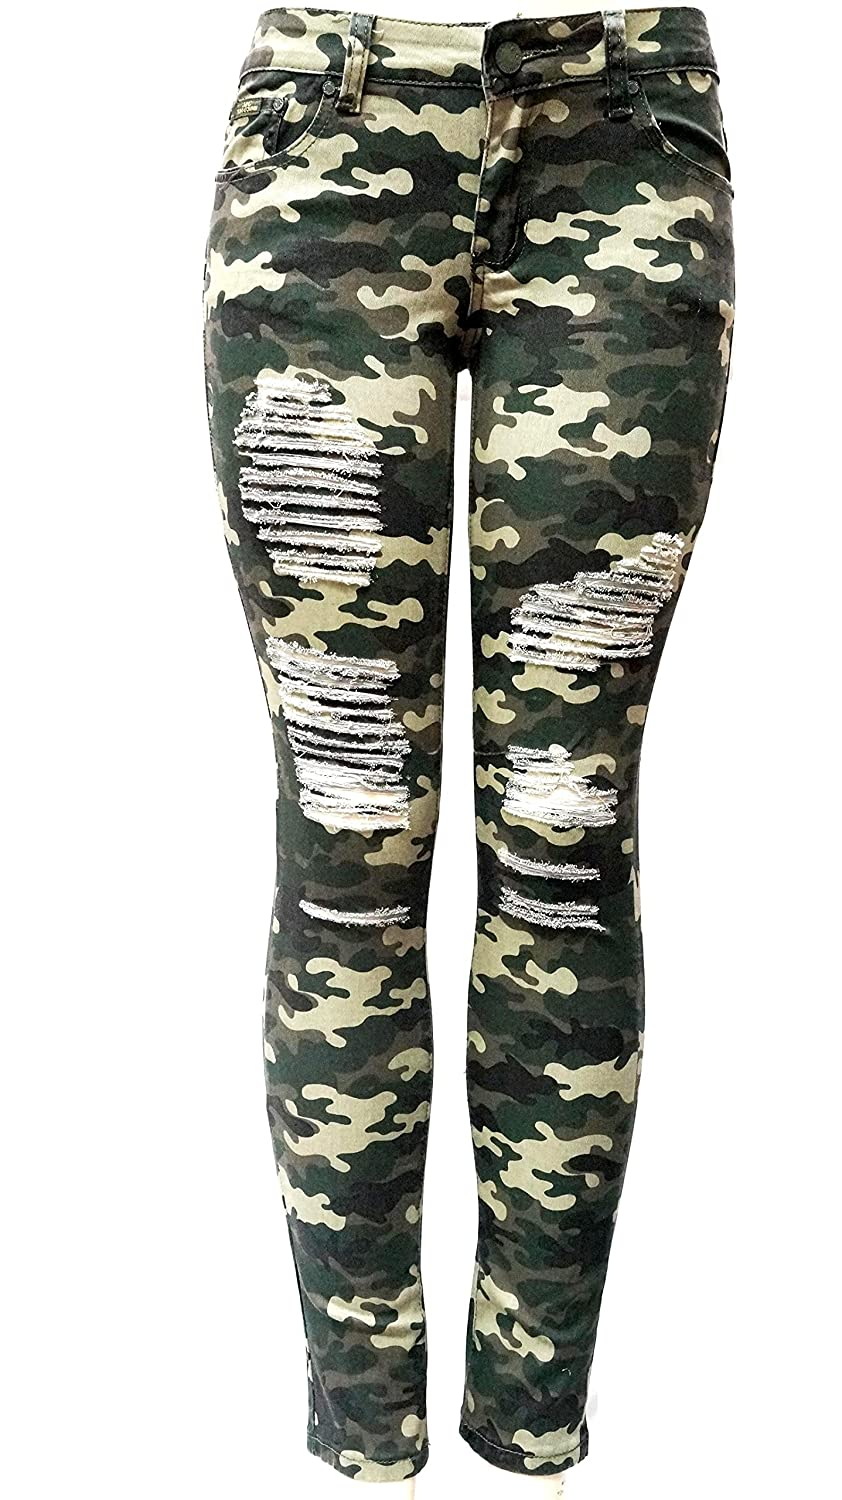 To acquire Skinny Camouflage jeans for juniors pictures trends